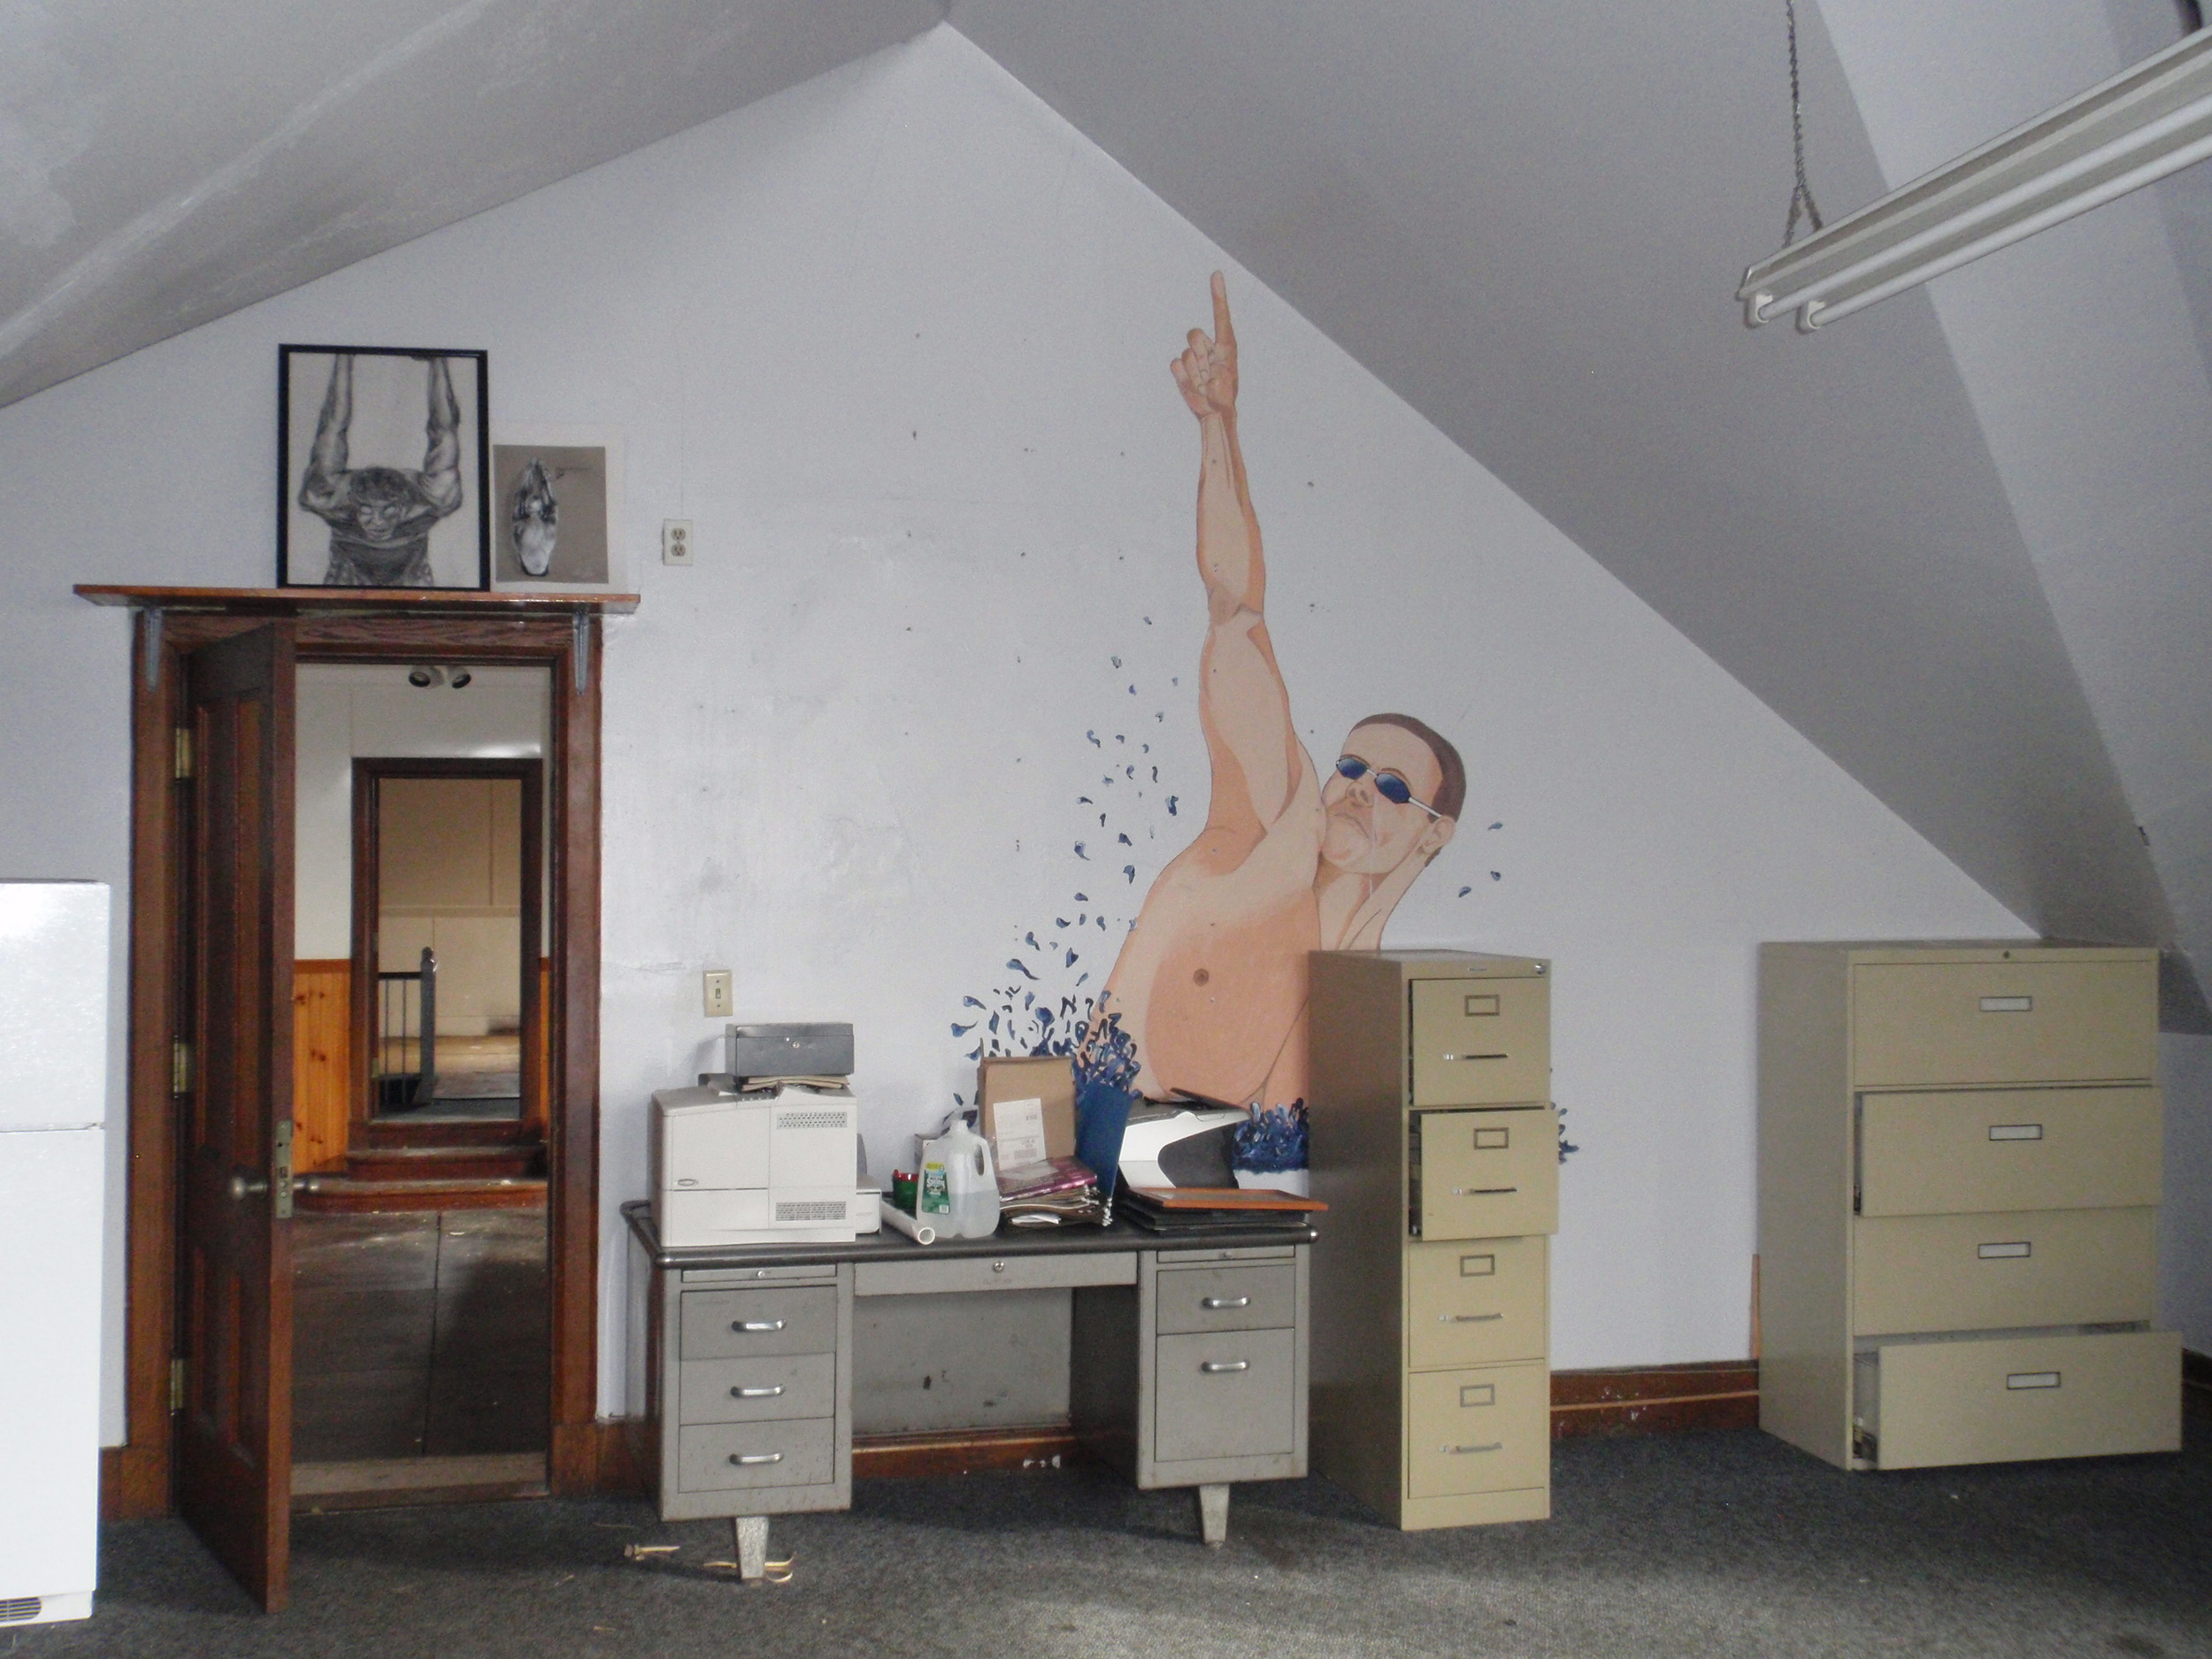 A mural in one of the upstairs offices.